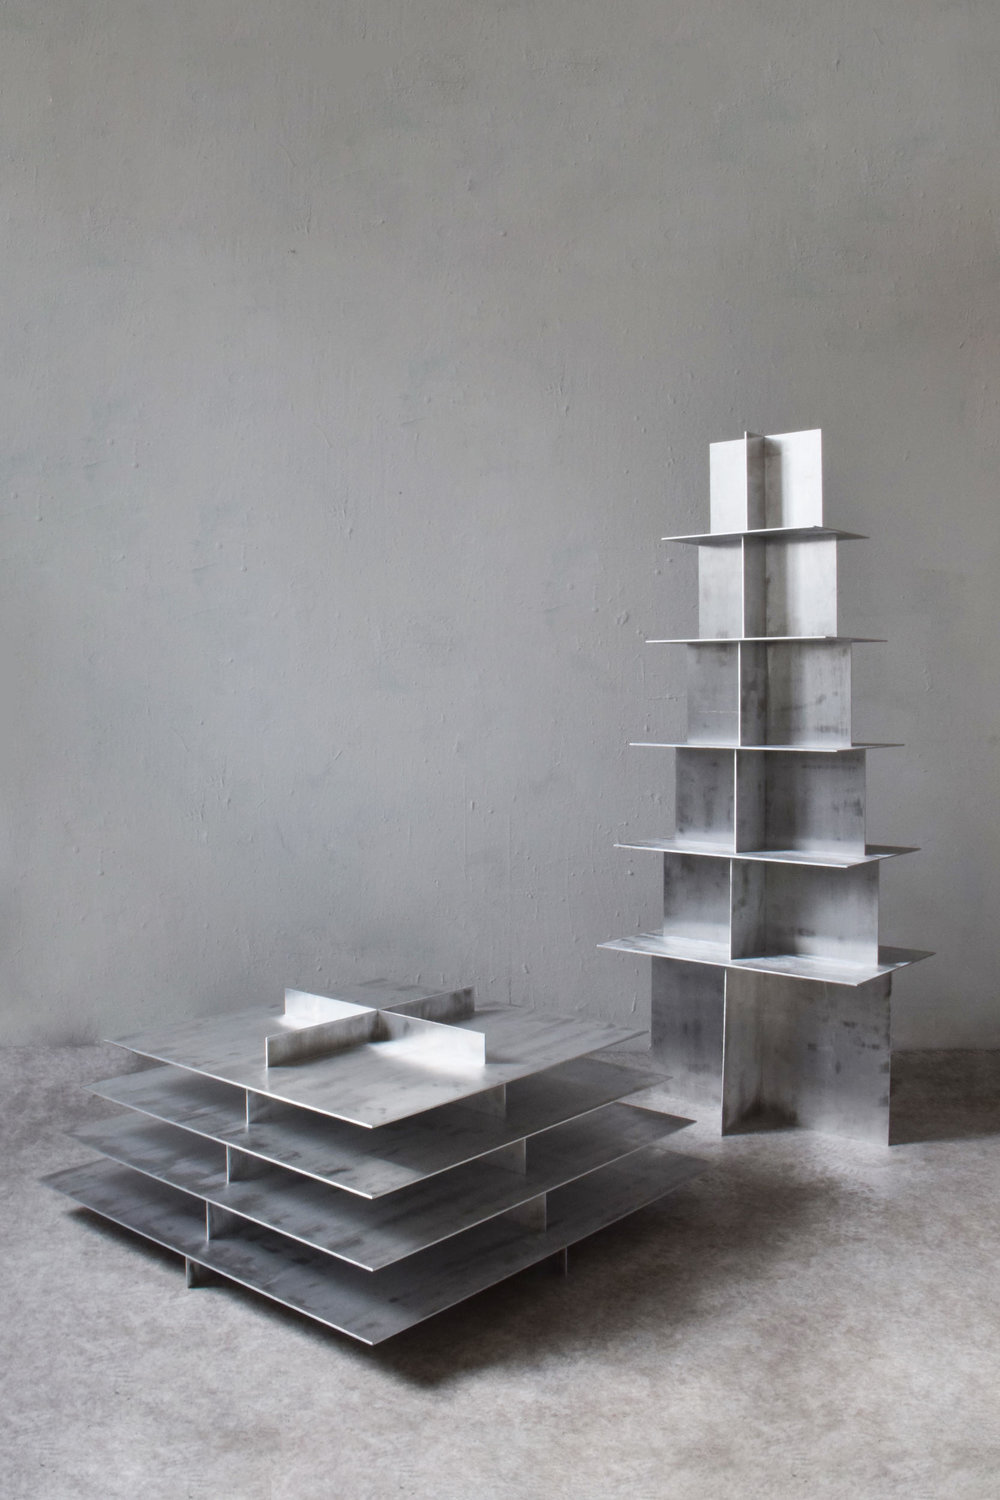 Fat Pyramid and Regular Pyramid, Collaboration with  Bram Vanderbeke  - Photos by Core Studio